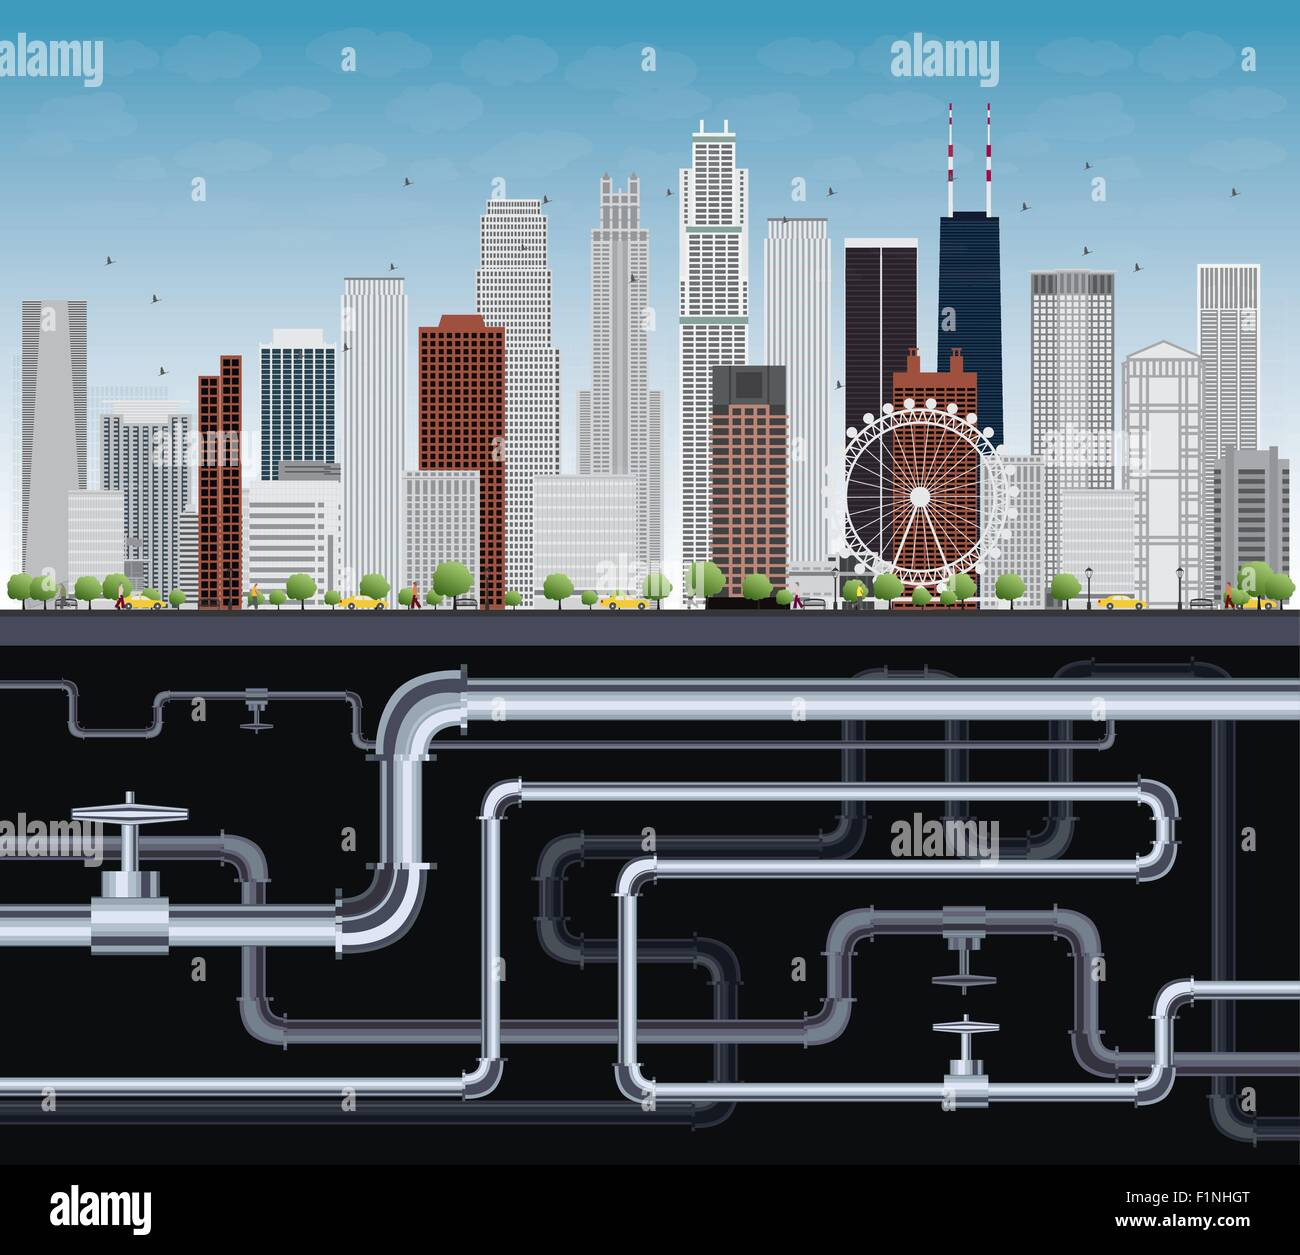 Imaginary Big City with Skyscrapers, Blue Sky, Trees and Tubes. Vector Illustration - Stock Vector